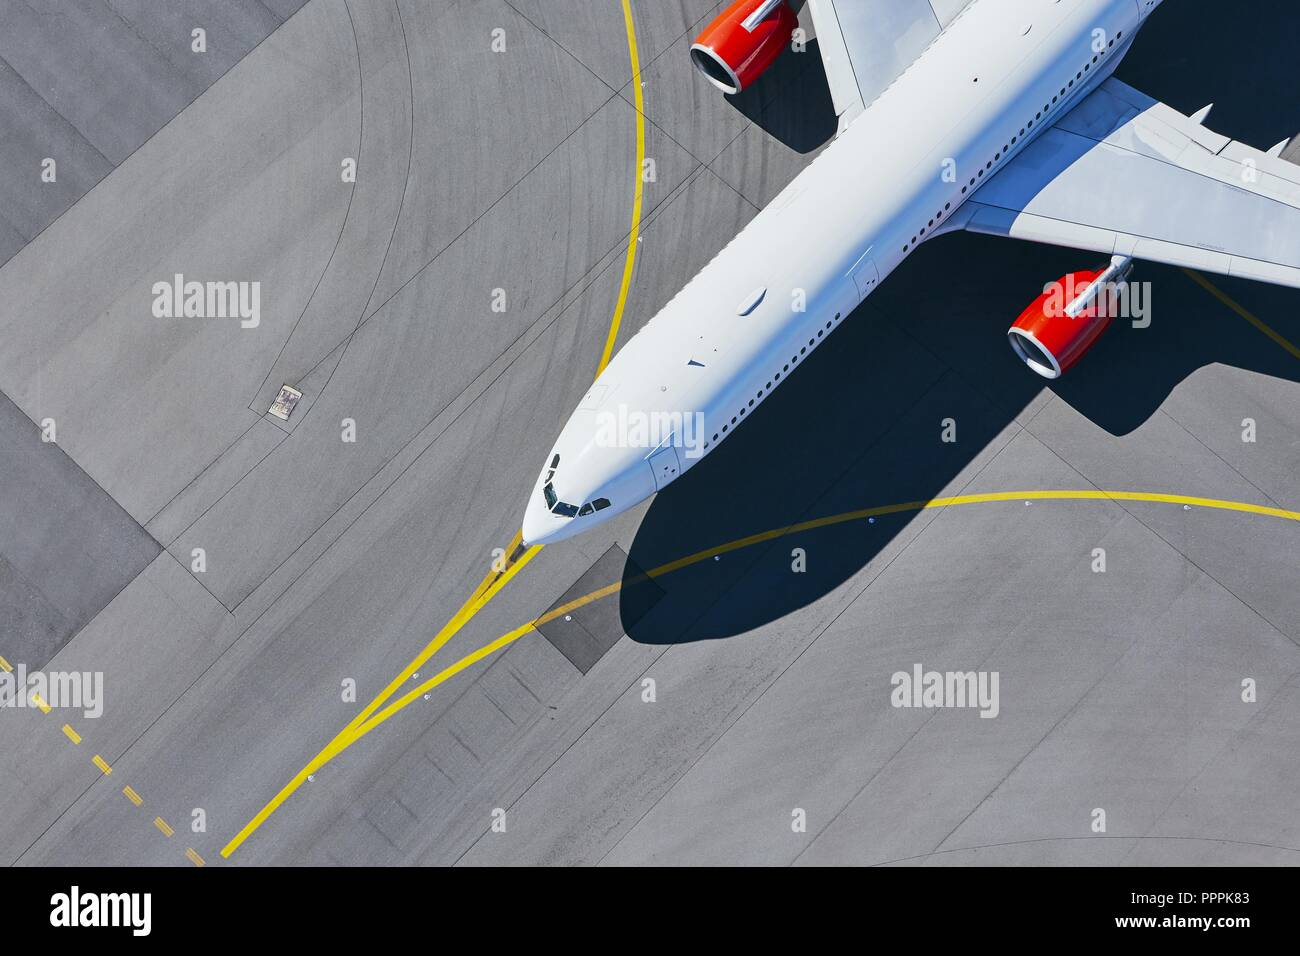 Aerial view of airport. Airplane taxiing to runway before take off. - Stock Image